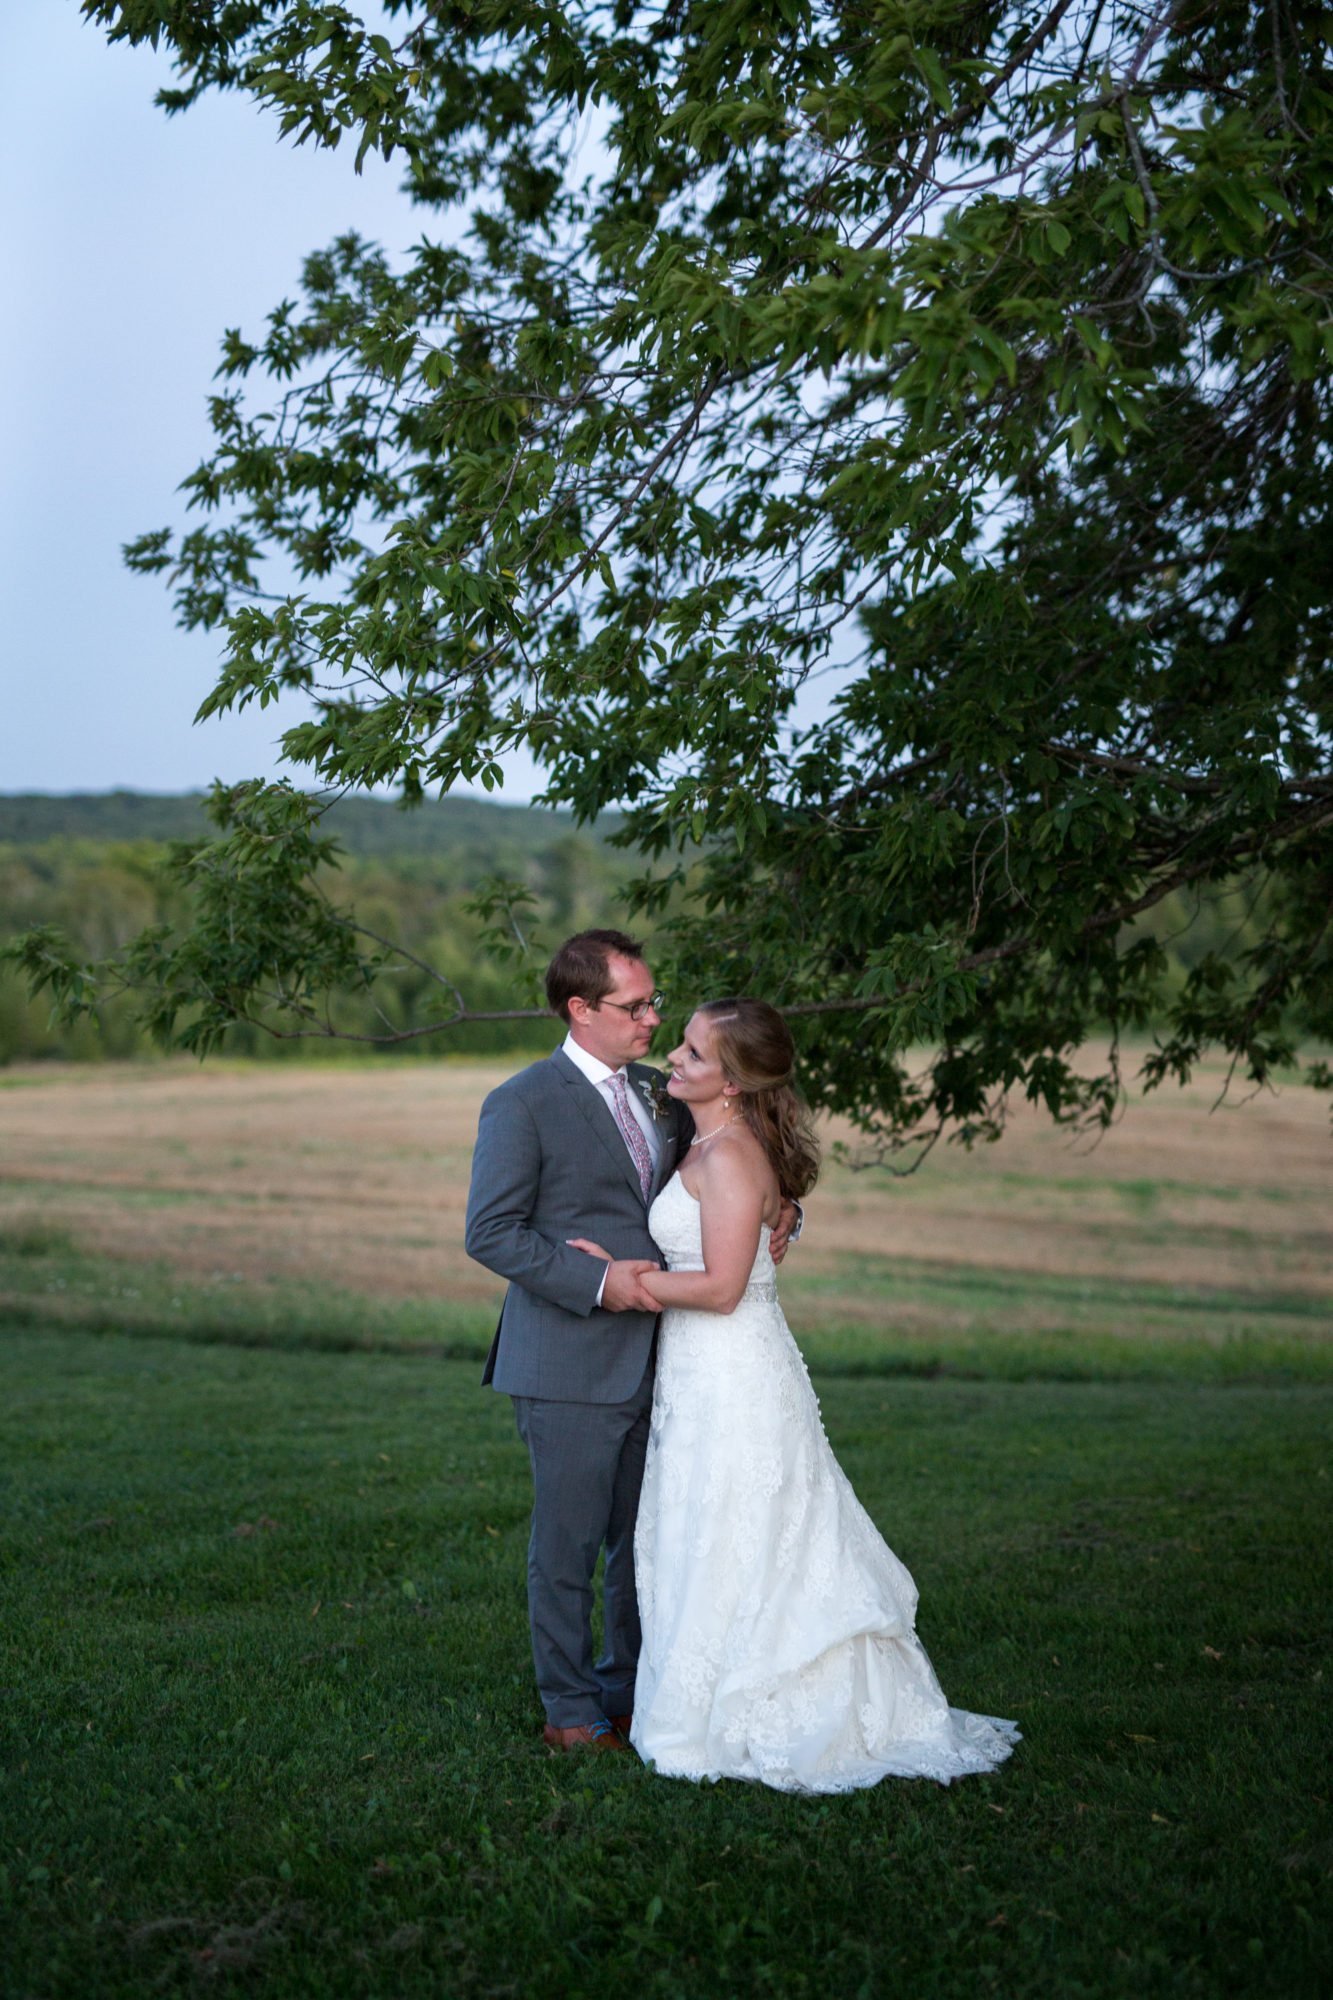 Sunset Bride Groom South Pond Farms Zsuzsi Pal Photography Wedding